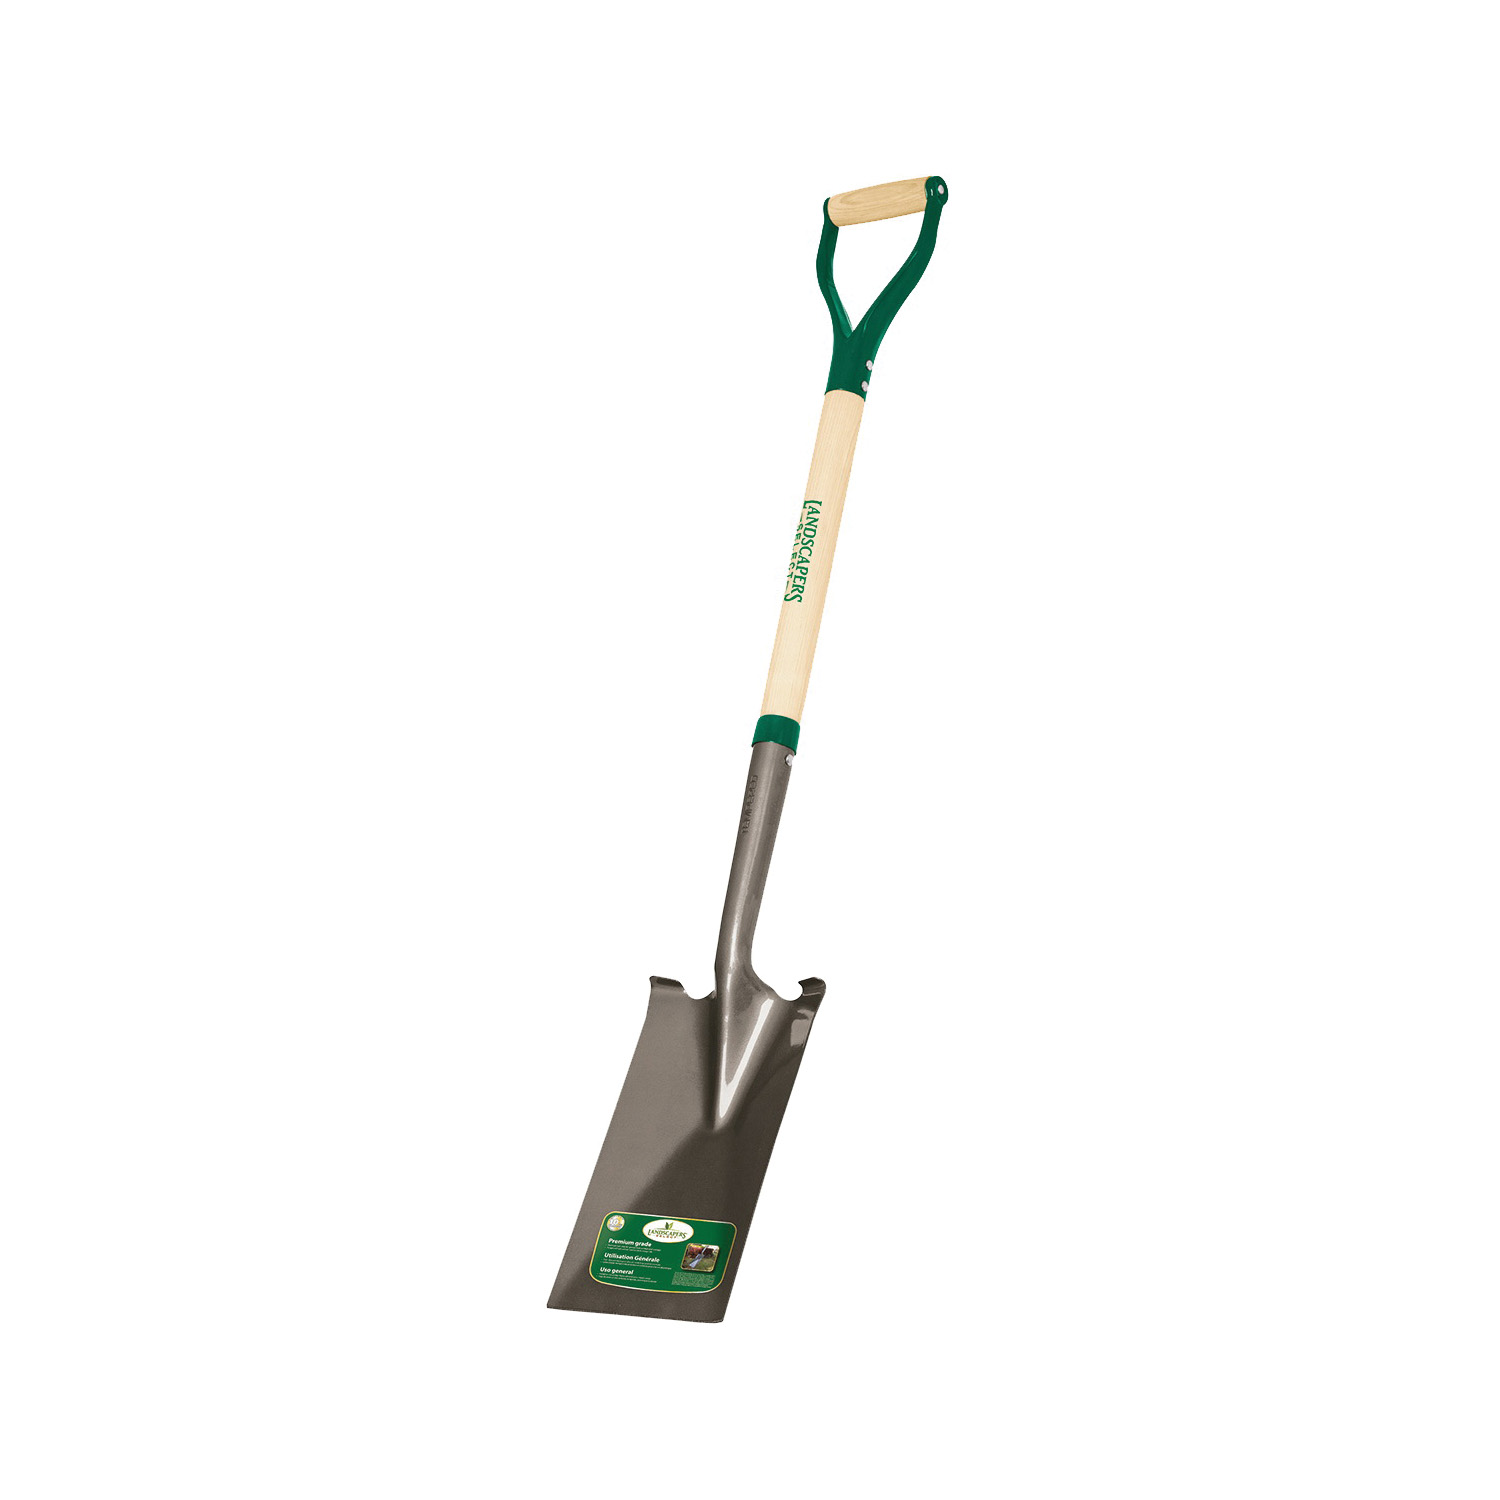 Picture of Landscapers Select 34595 Garden Spade Shovel, 7 in W Blade, Steel Blade, Wood Handle, D-Shaped Handle